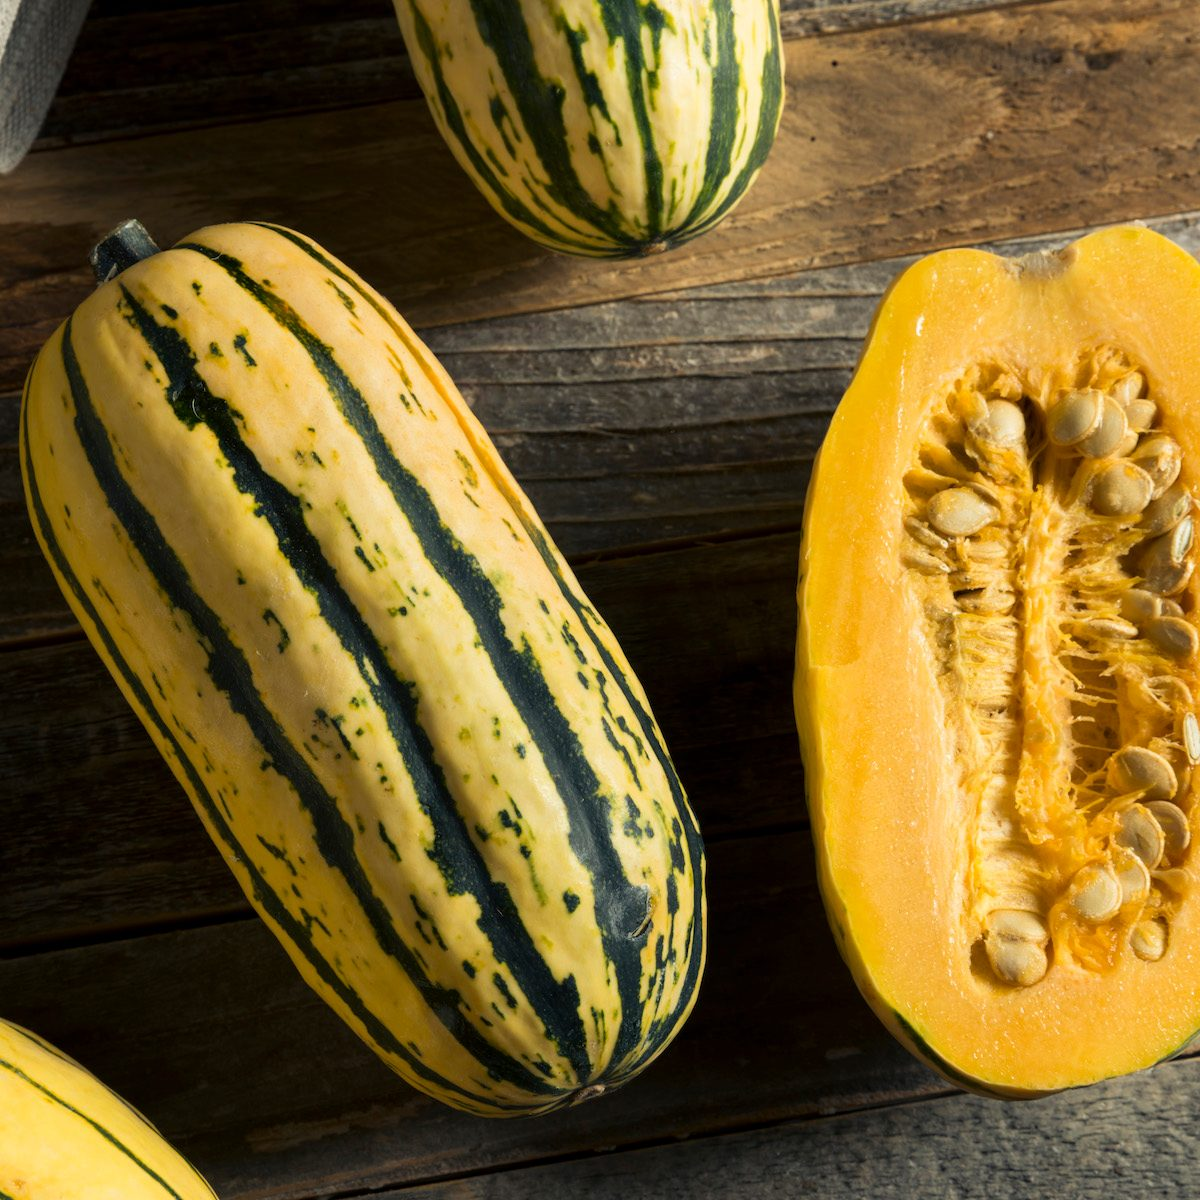 Two deliata squash—one whole and one sliced in half vertically.